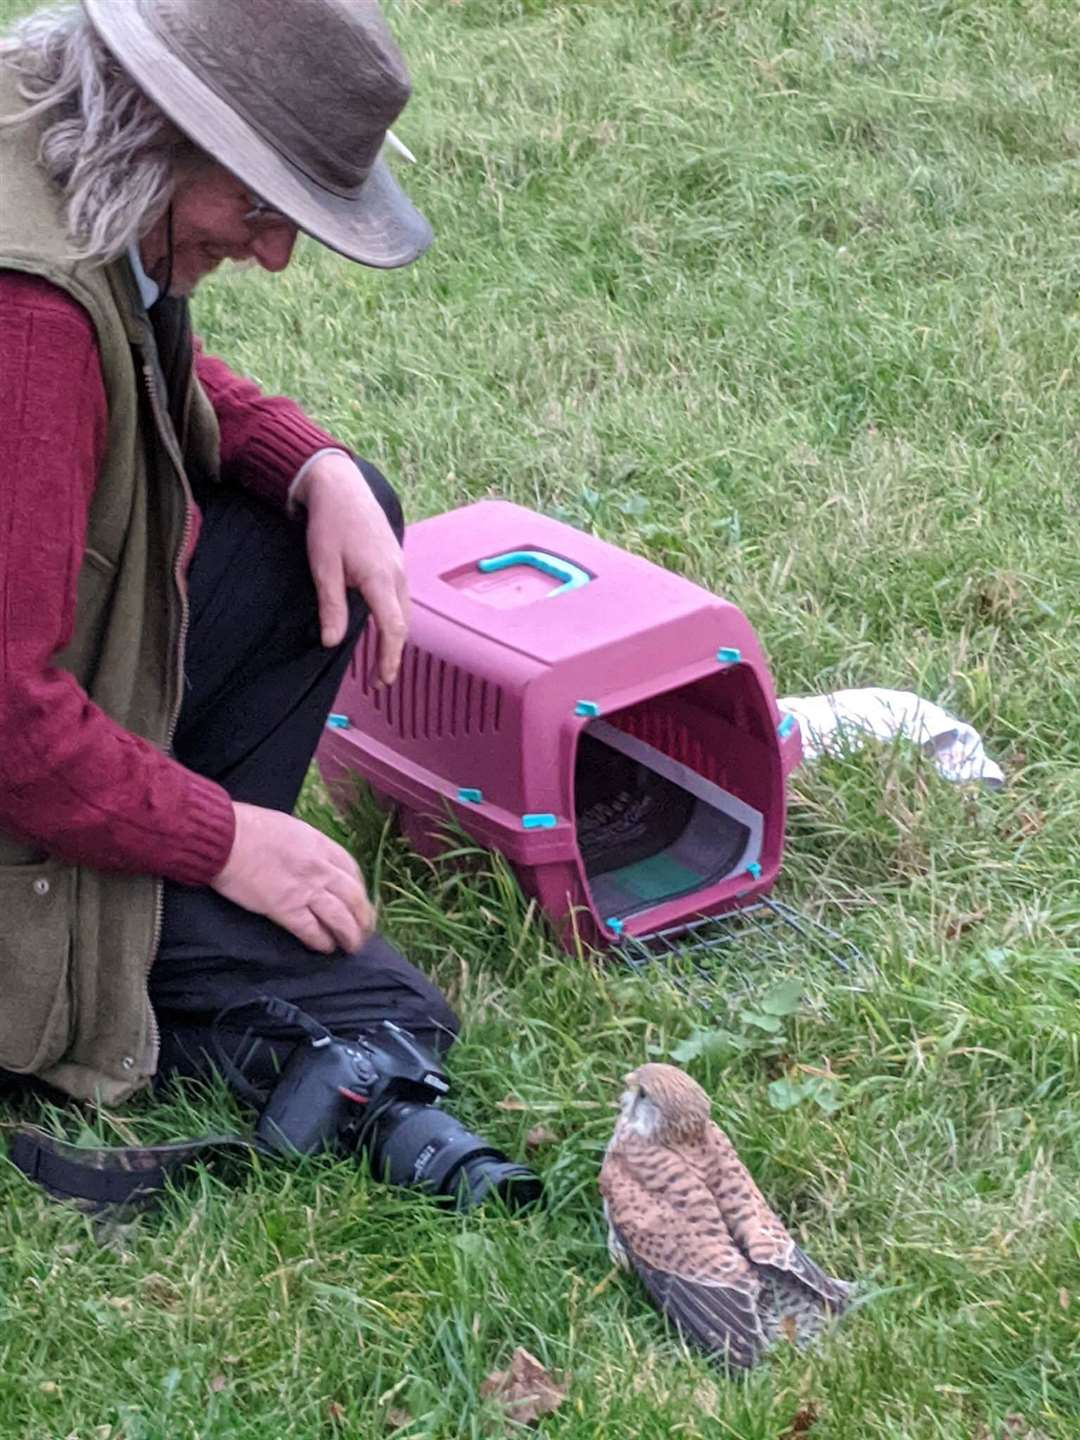 Jono releases the kestrel back into the wild at Ash Valley Golf Club, a week after rescuing it (43222279)